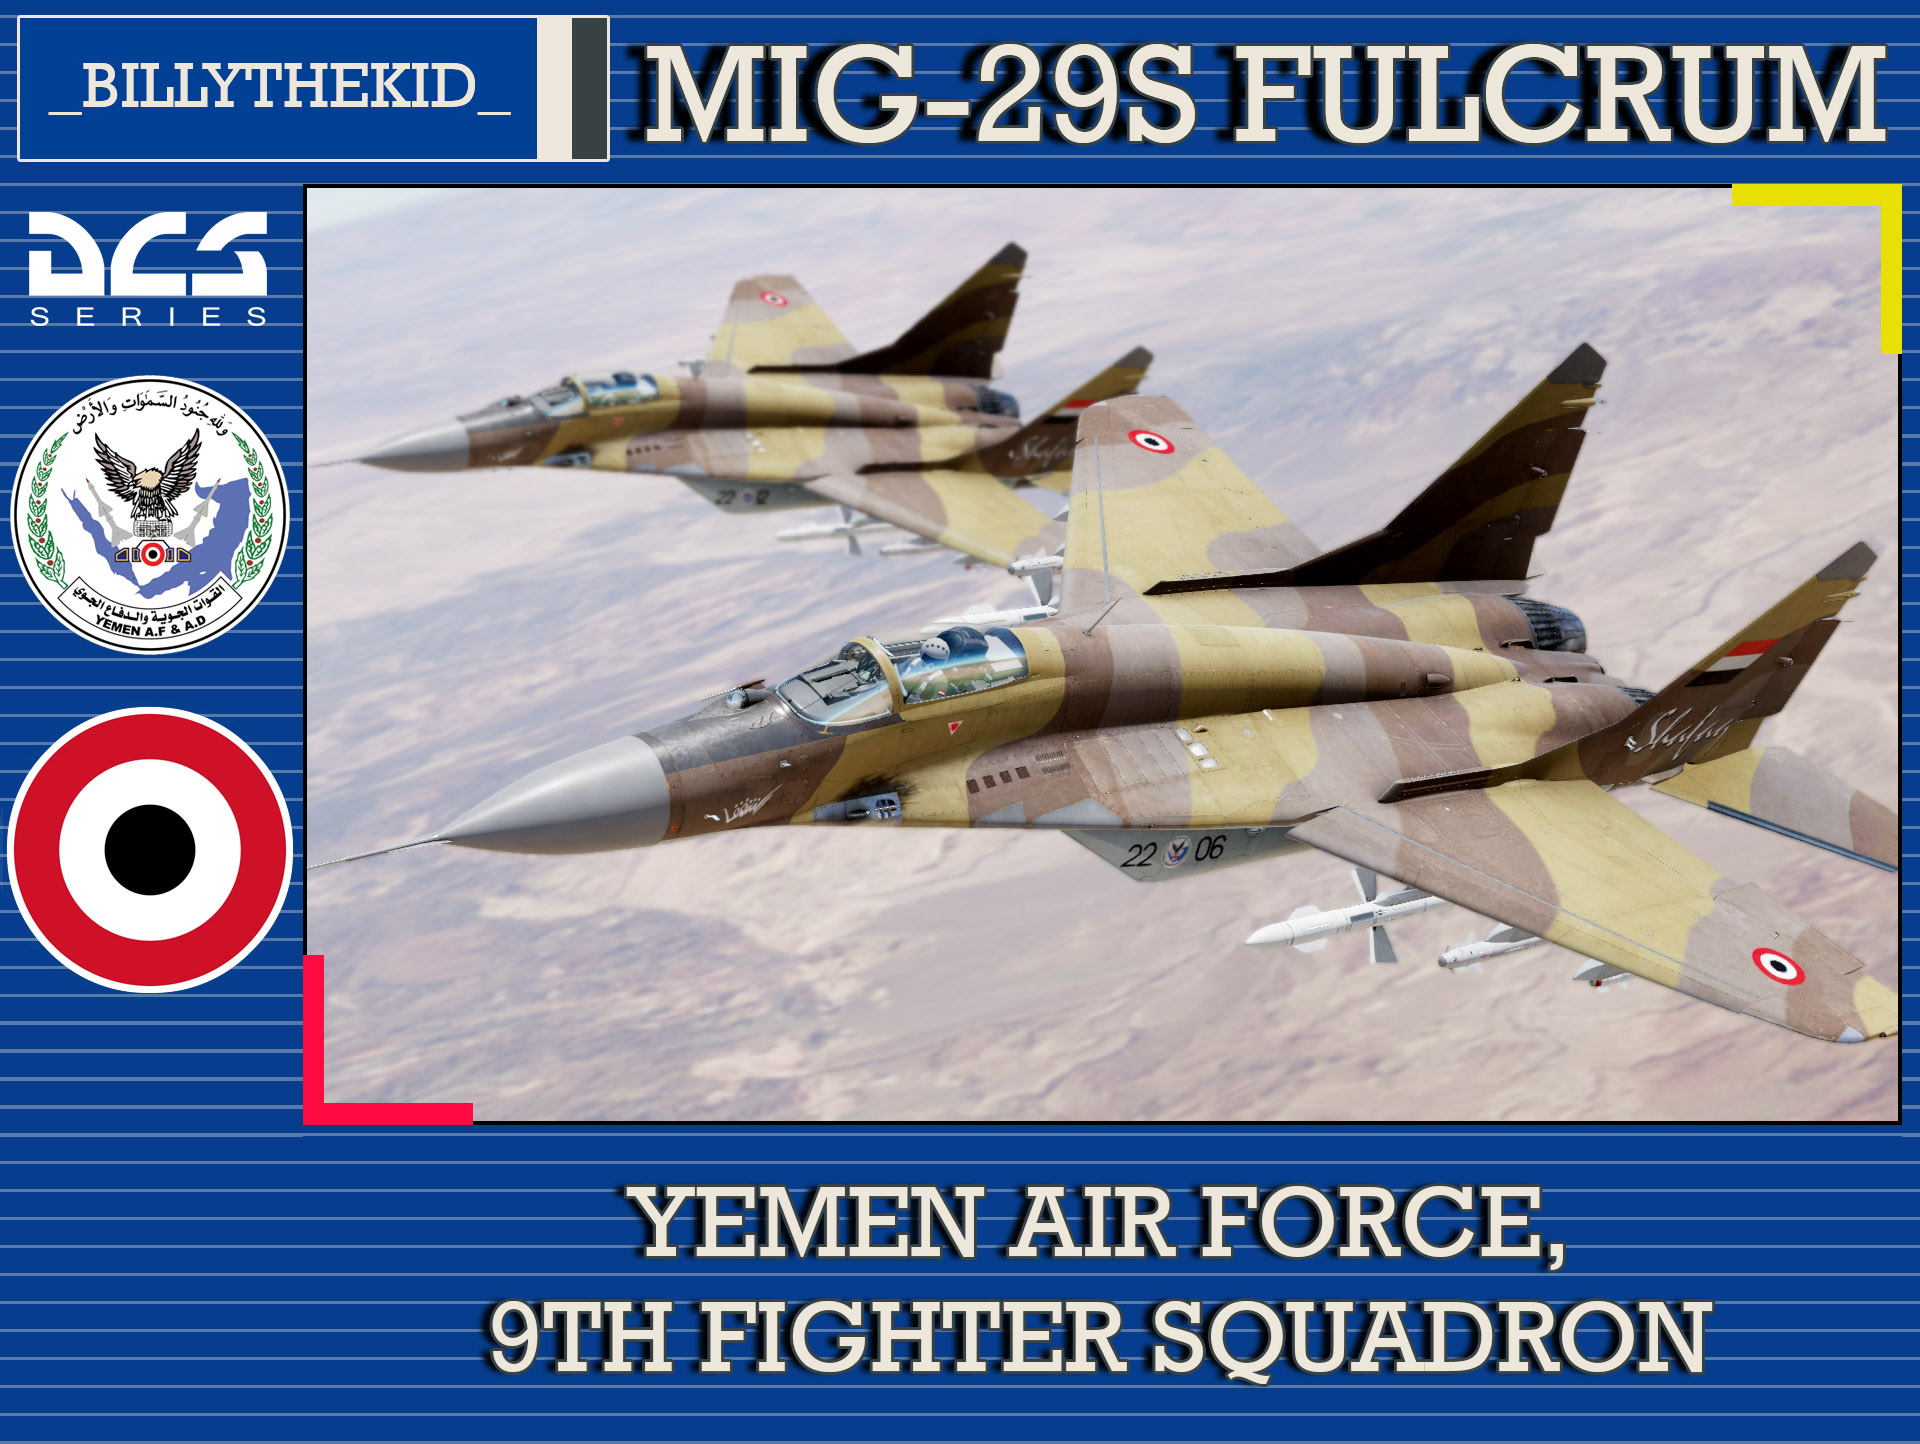 Yemen Air Force - 9th Fighter Squadron MiG-29S Fulcrum